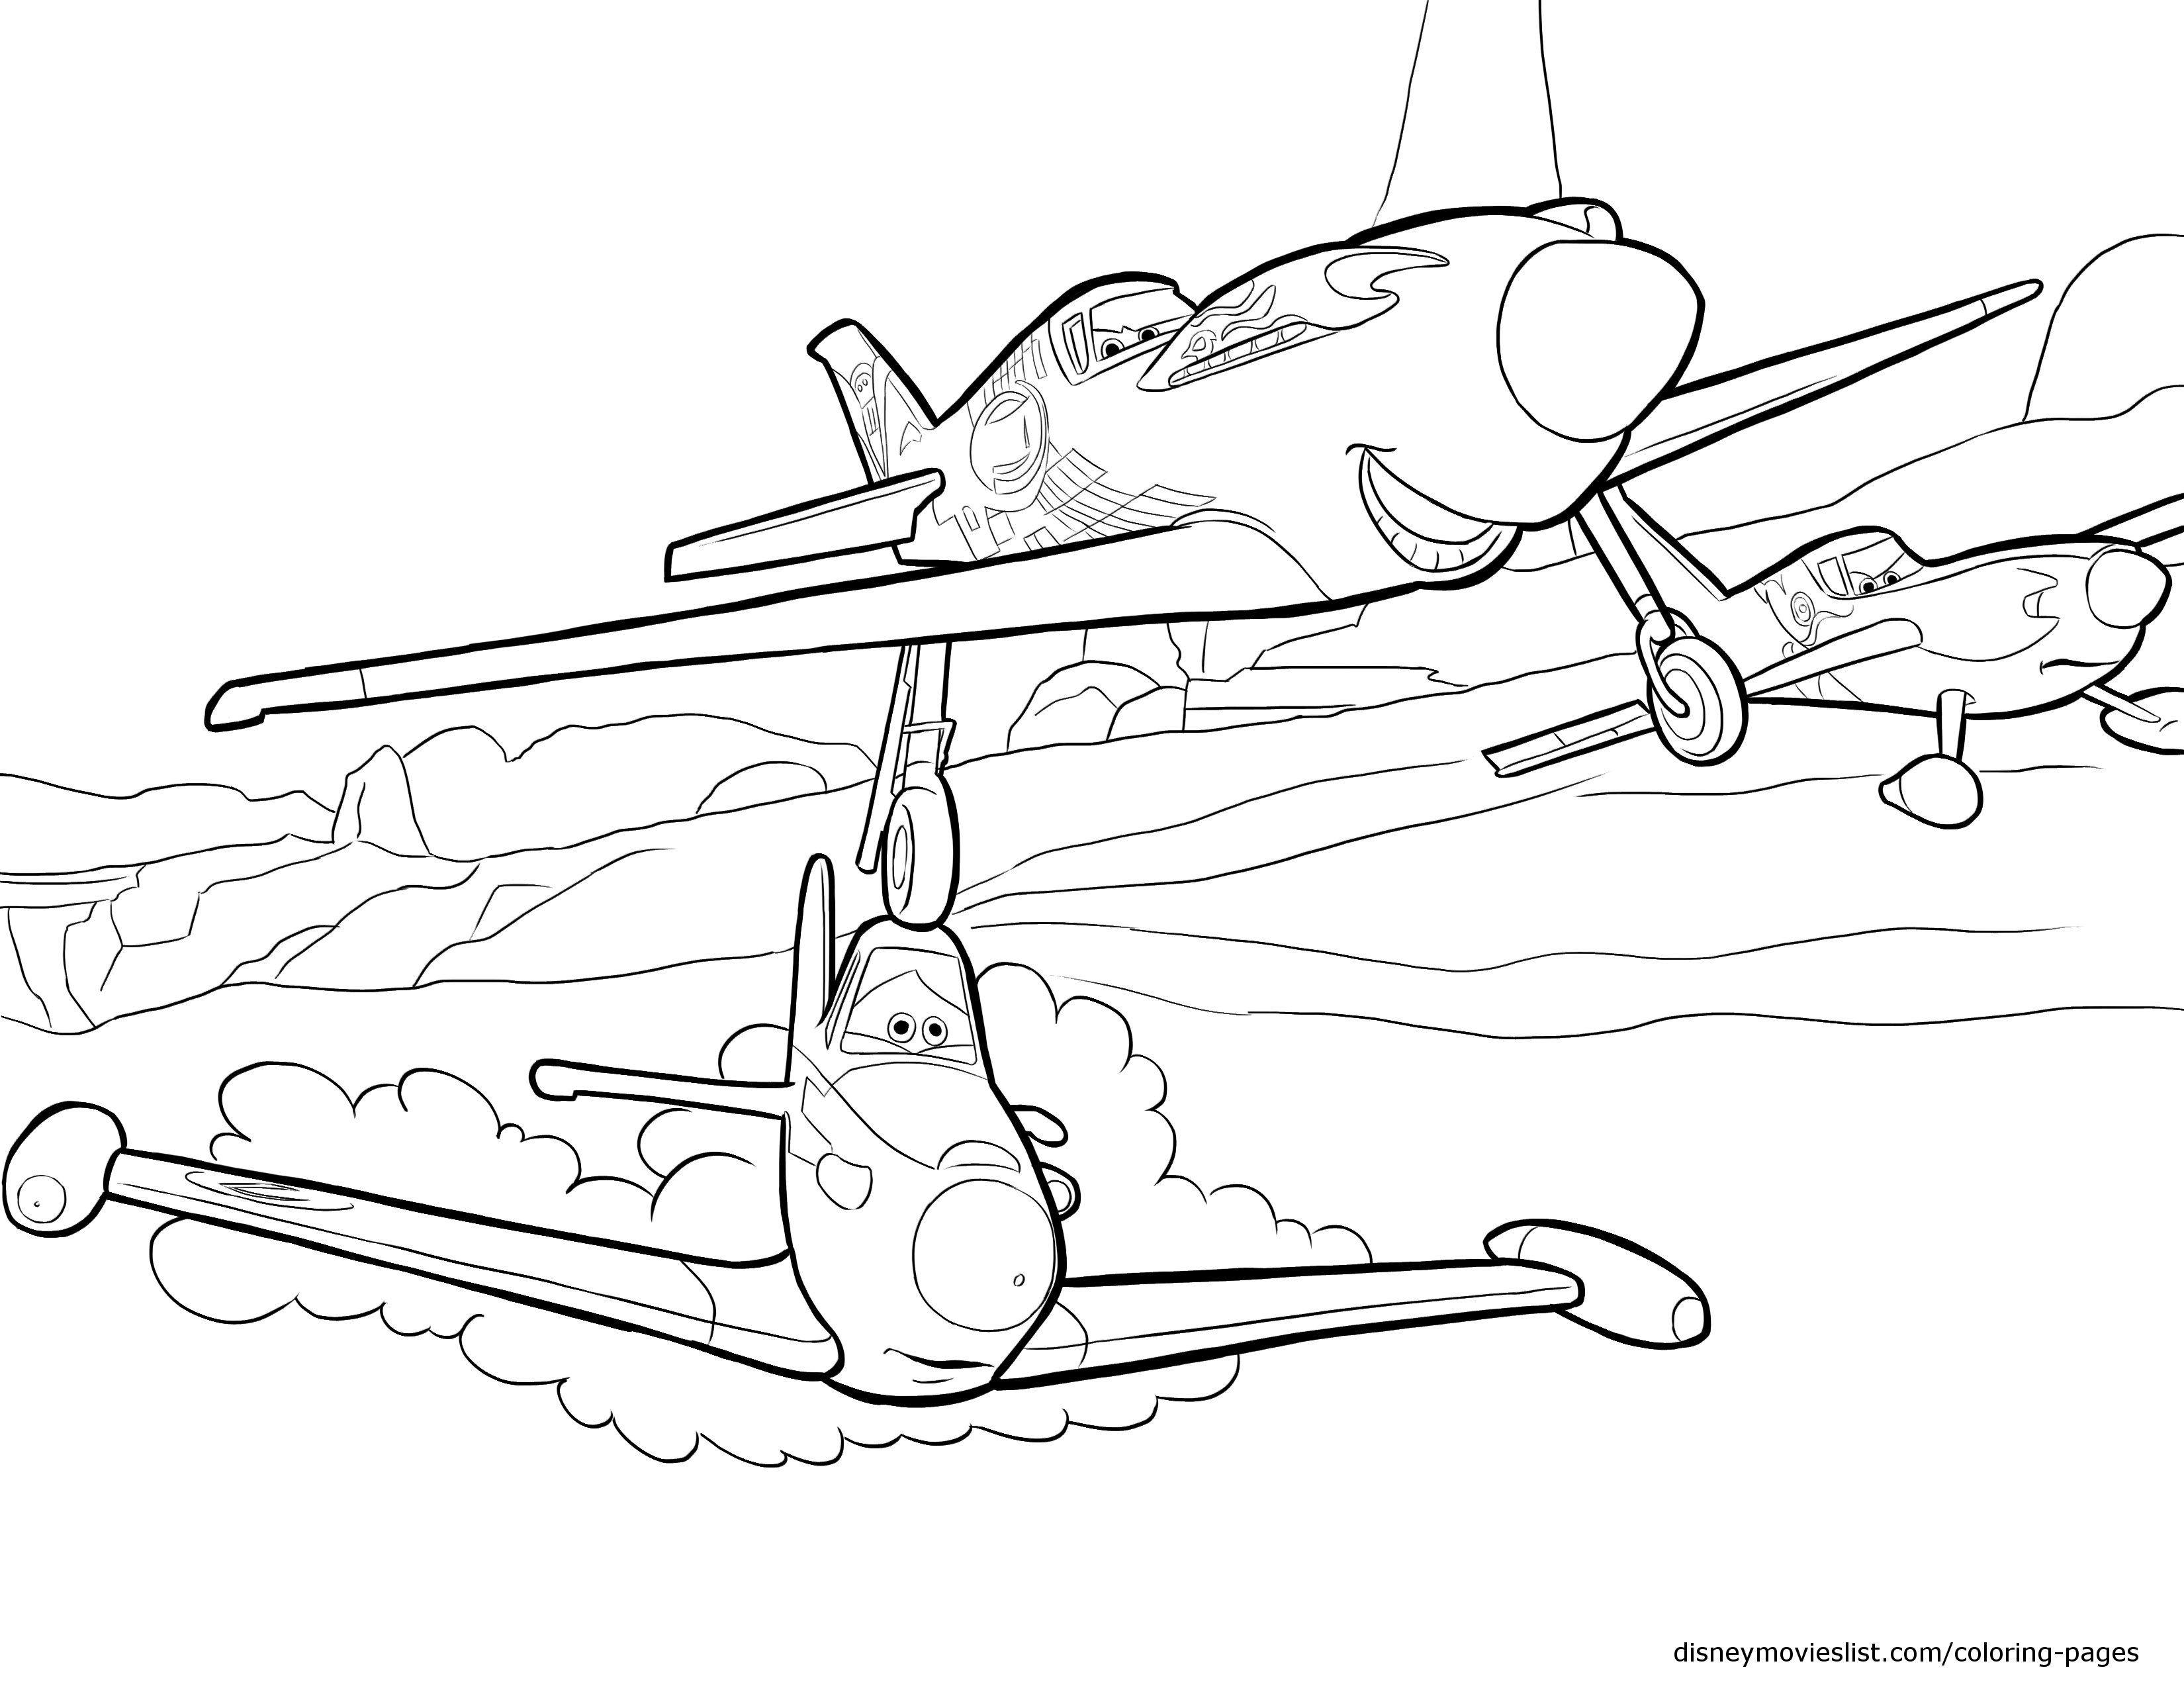 Free coloring pages jet plane - Coloring Pages Jet Coloring Pages Planes Coloring Book Eassume Com Eassume